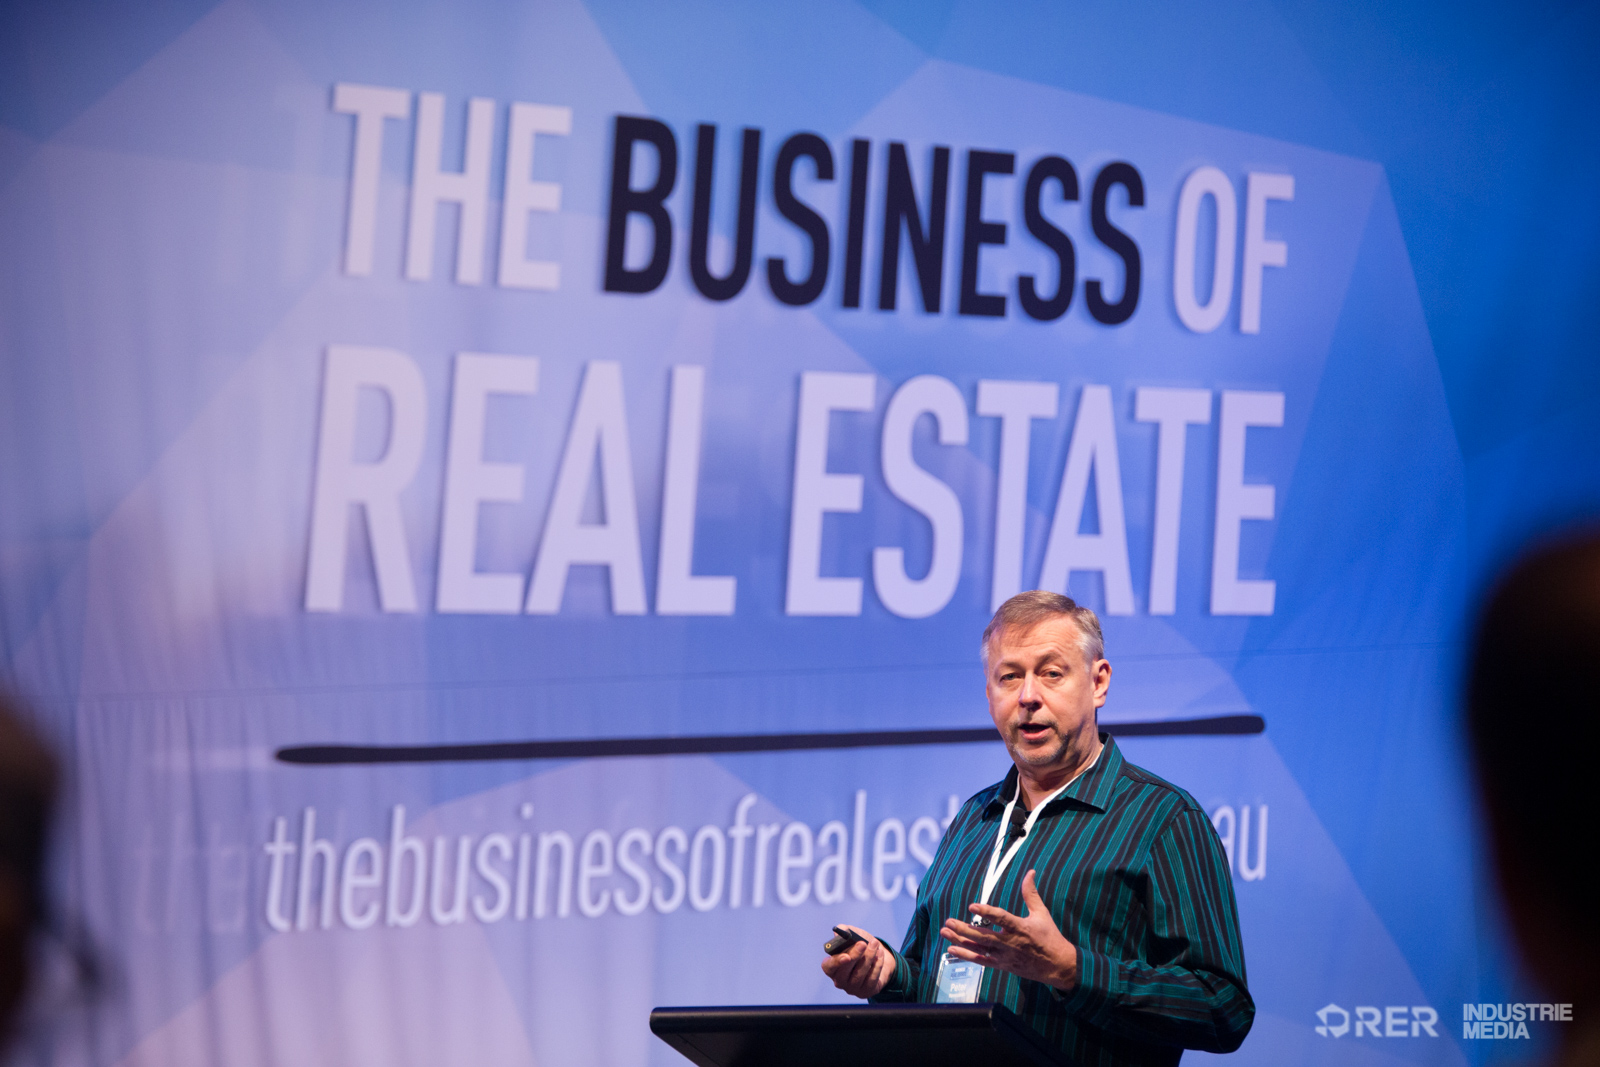 http://www.thebusinessofrealestate.com.au/wp-content/uploads/2016/09/RER_BUSINESS_OF_REAL_ESTATE-32.jpg